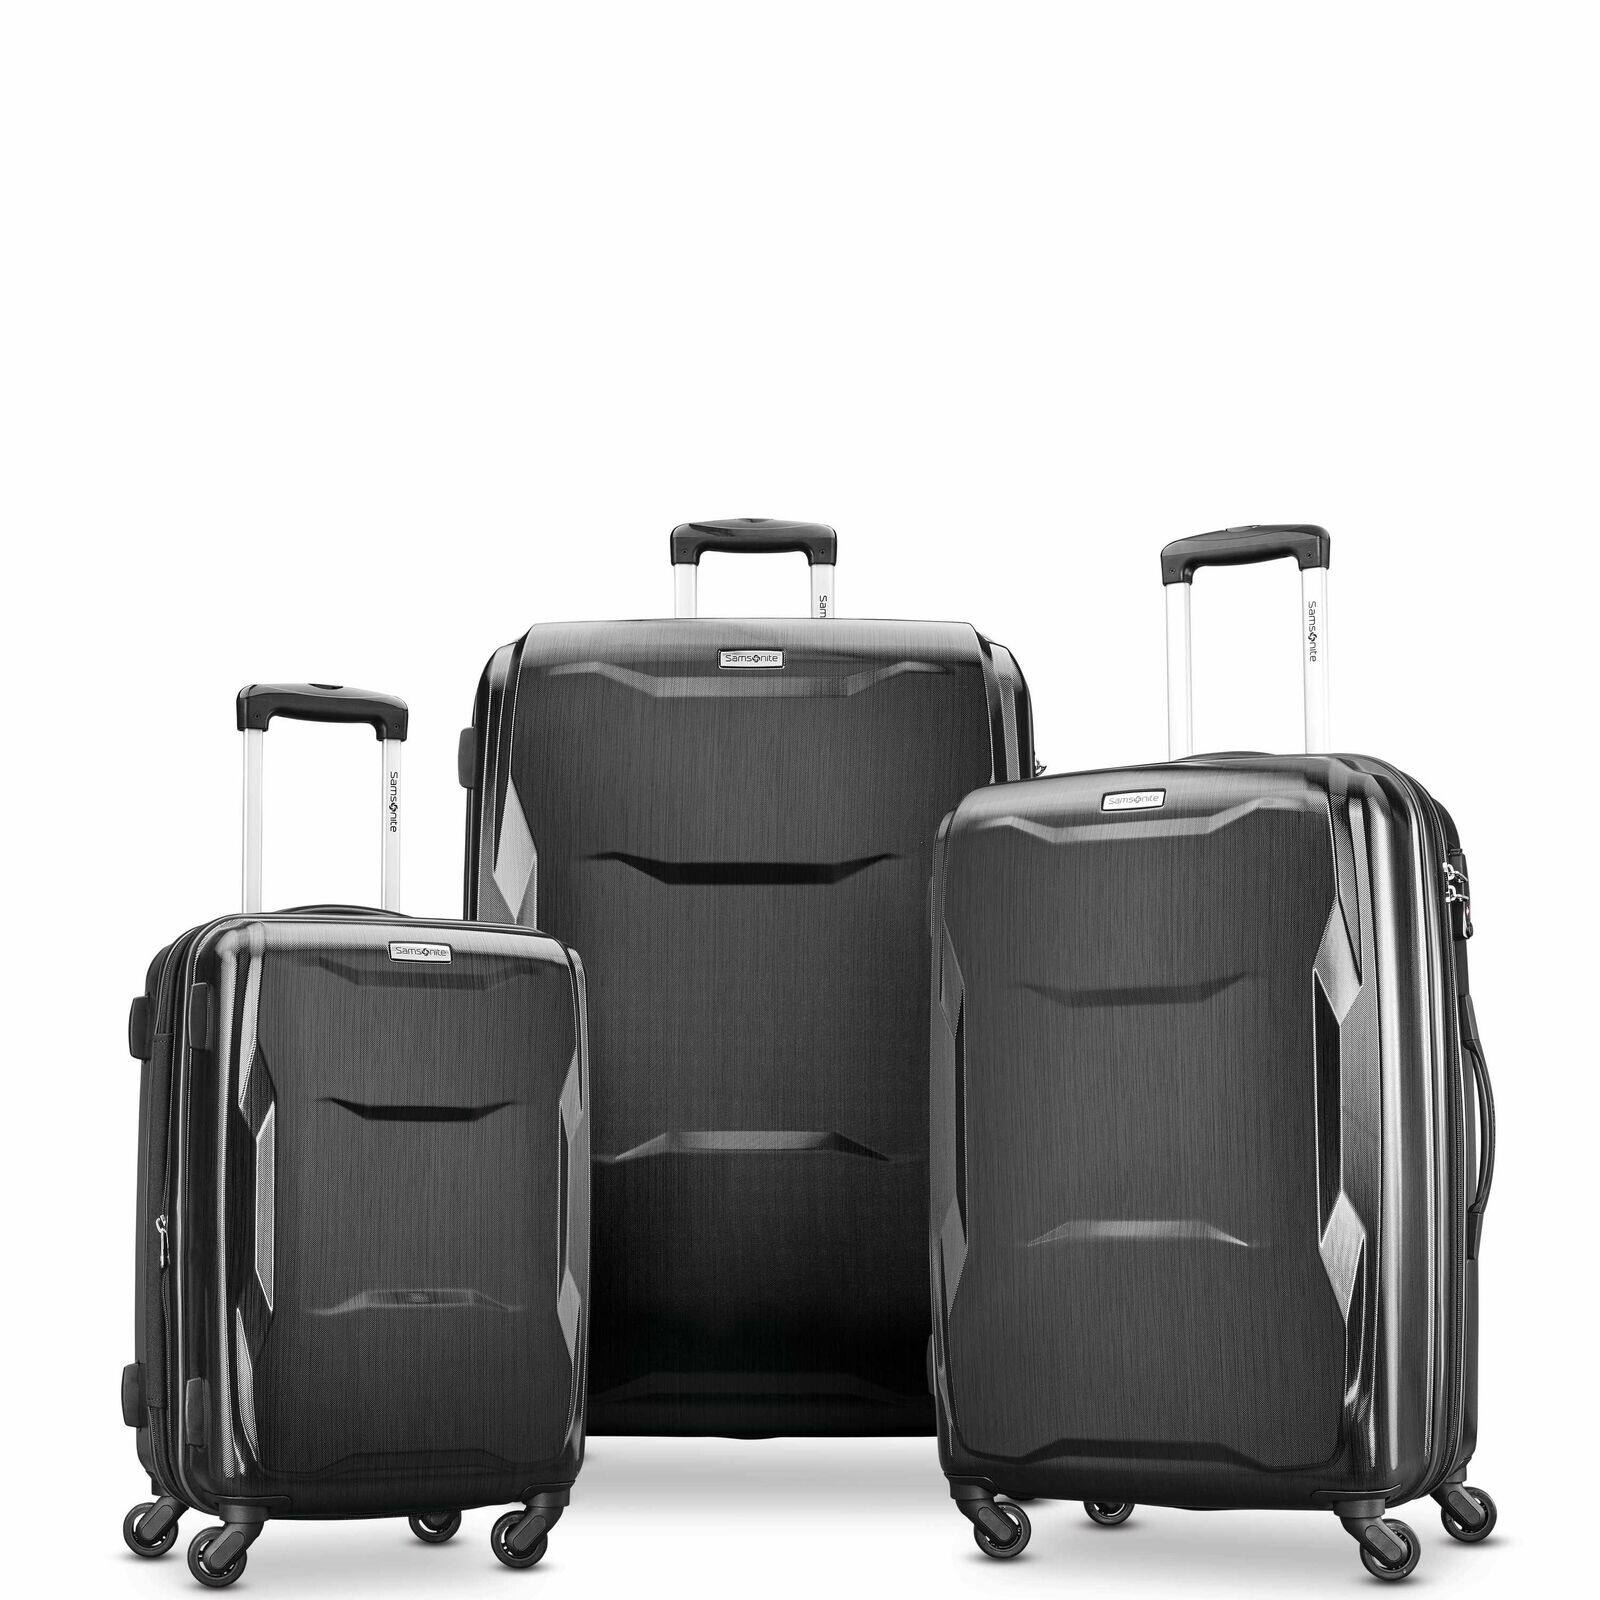 "3-Piece Samsonite Pivot Luggage Set (20"", 25"" & 29"") $143 + Free Shipping"